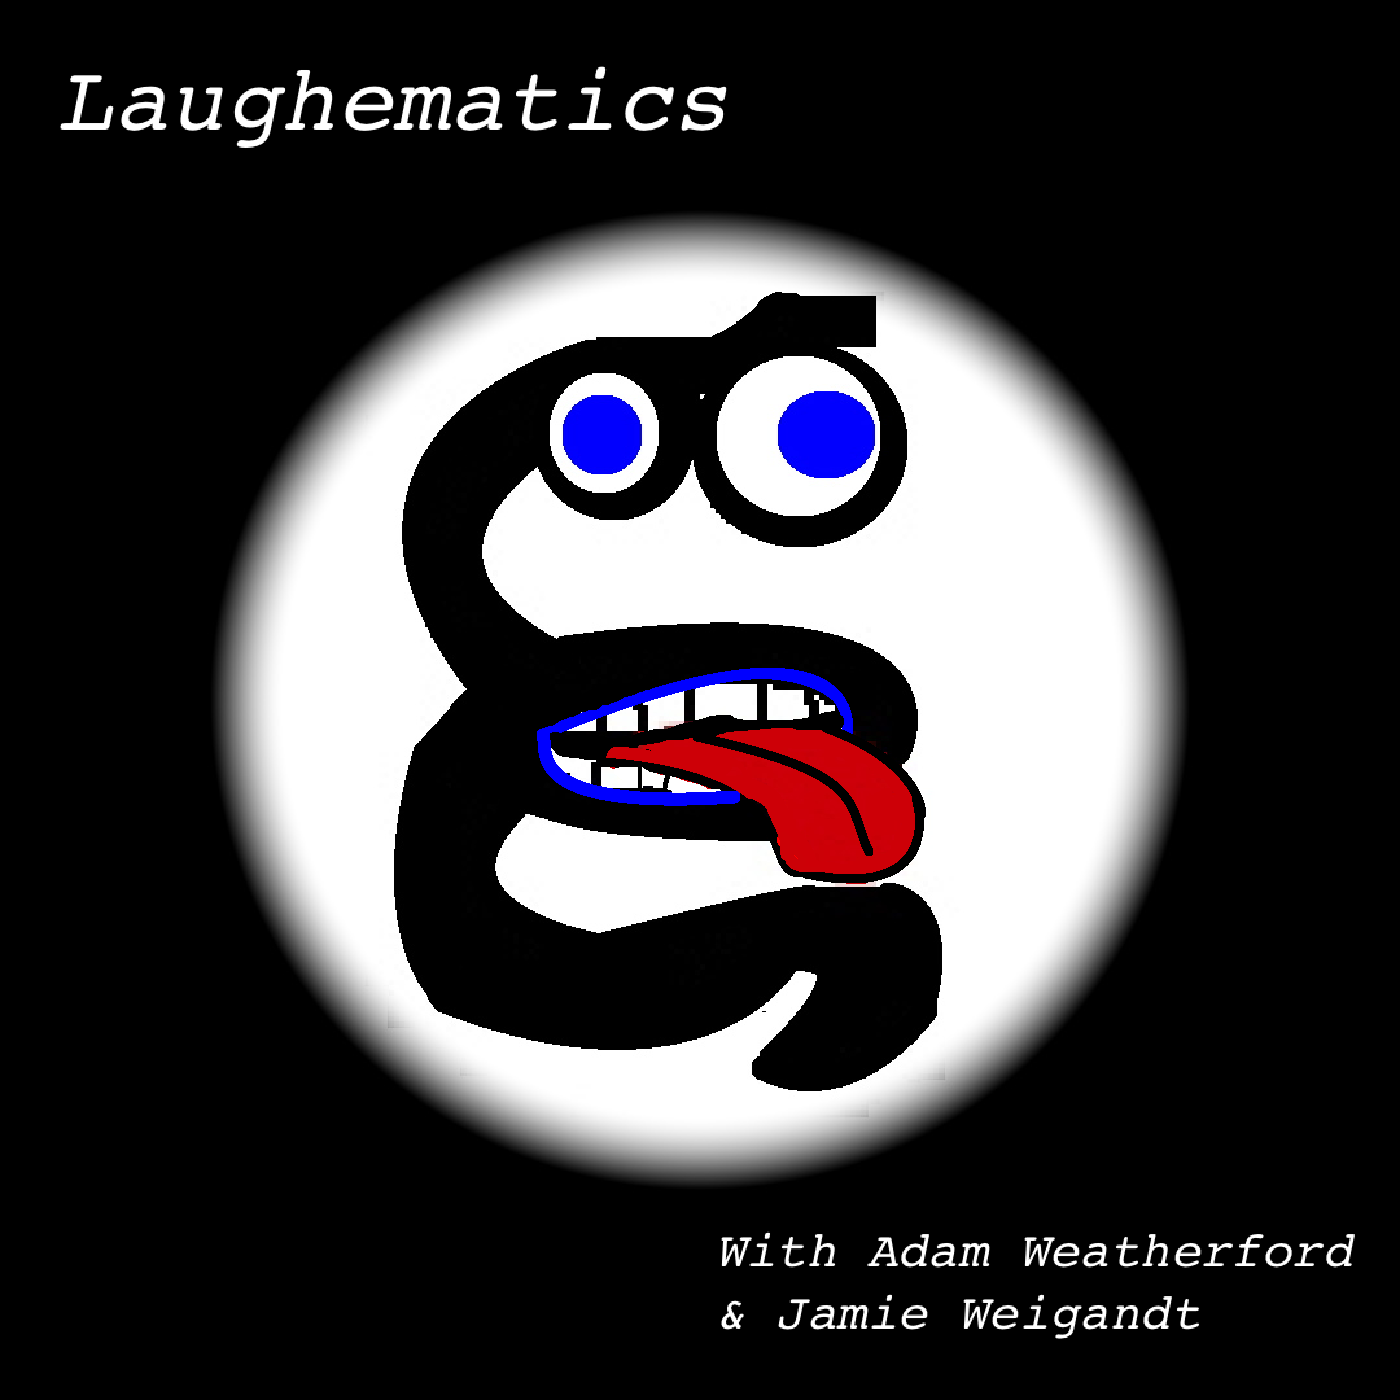 Laughematics